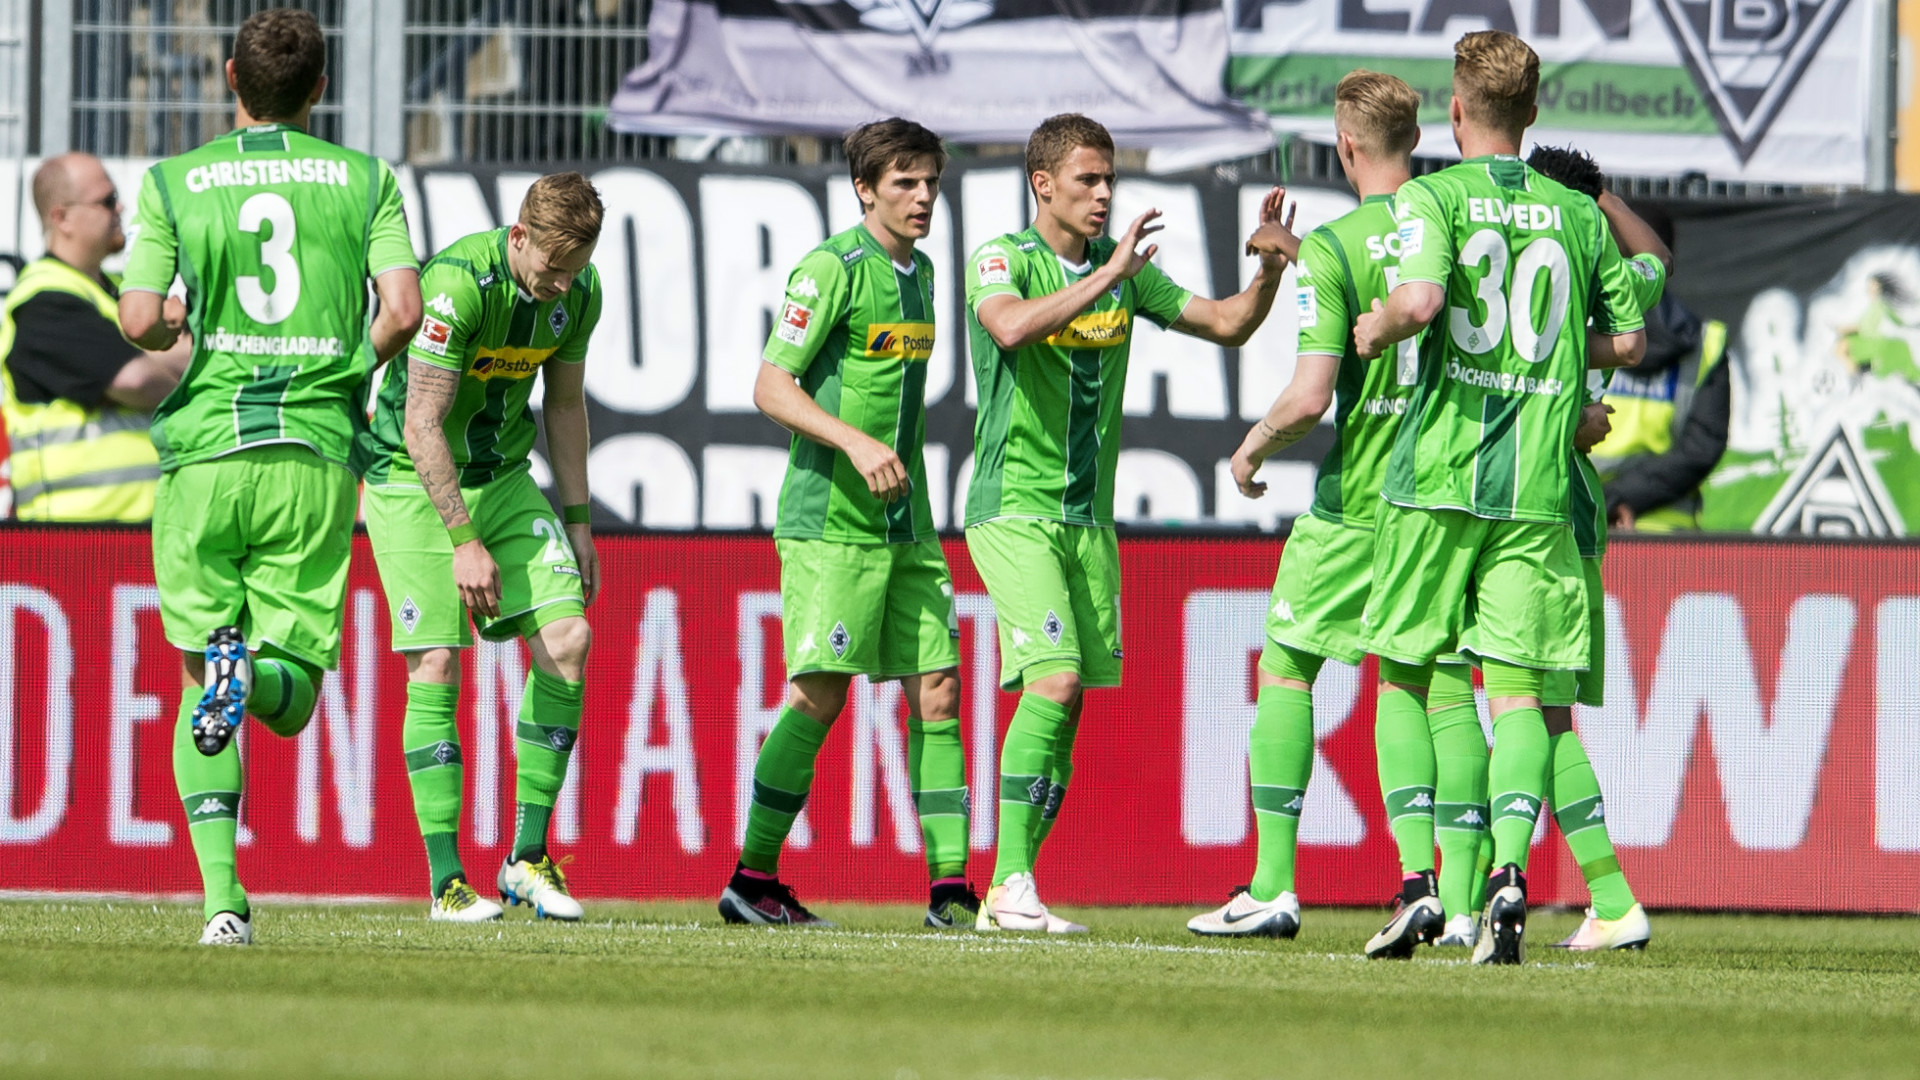 Video: Darmstadt 98 vs Borussia M gladbach